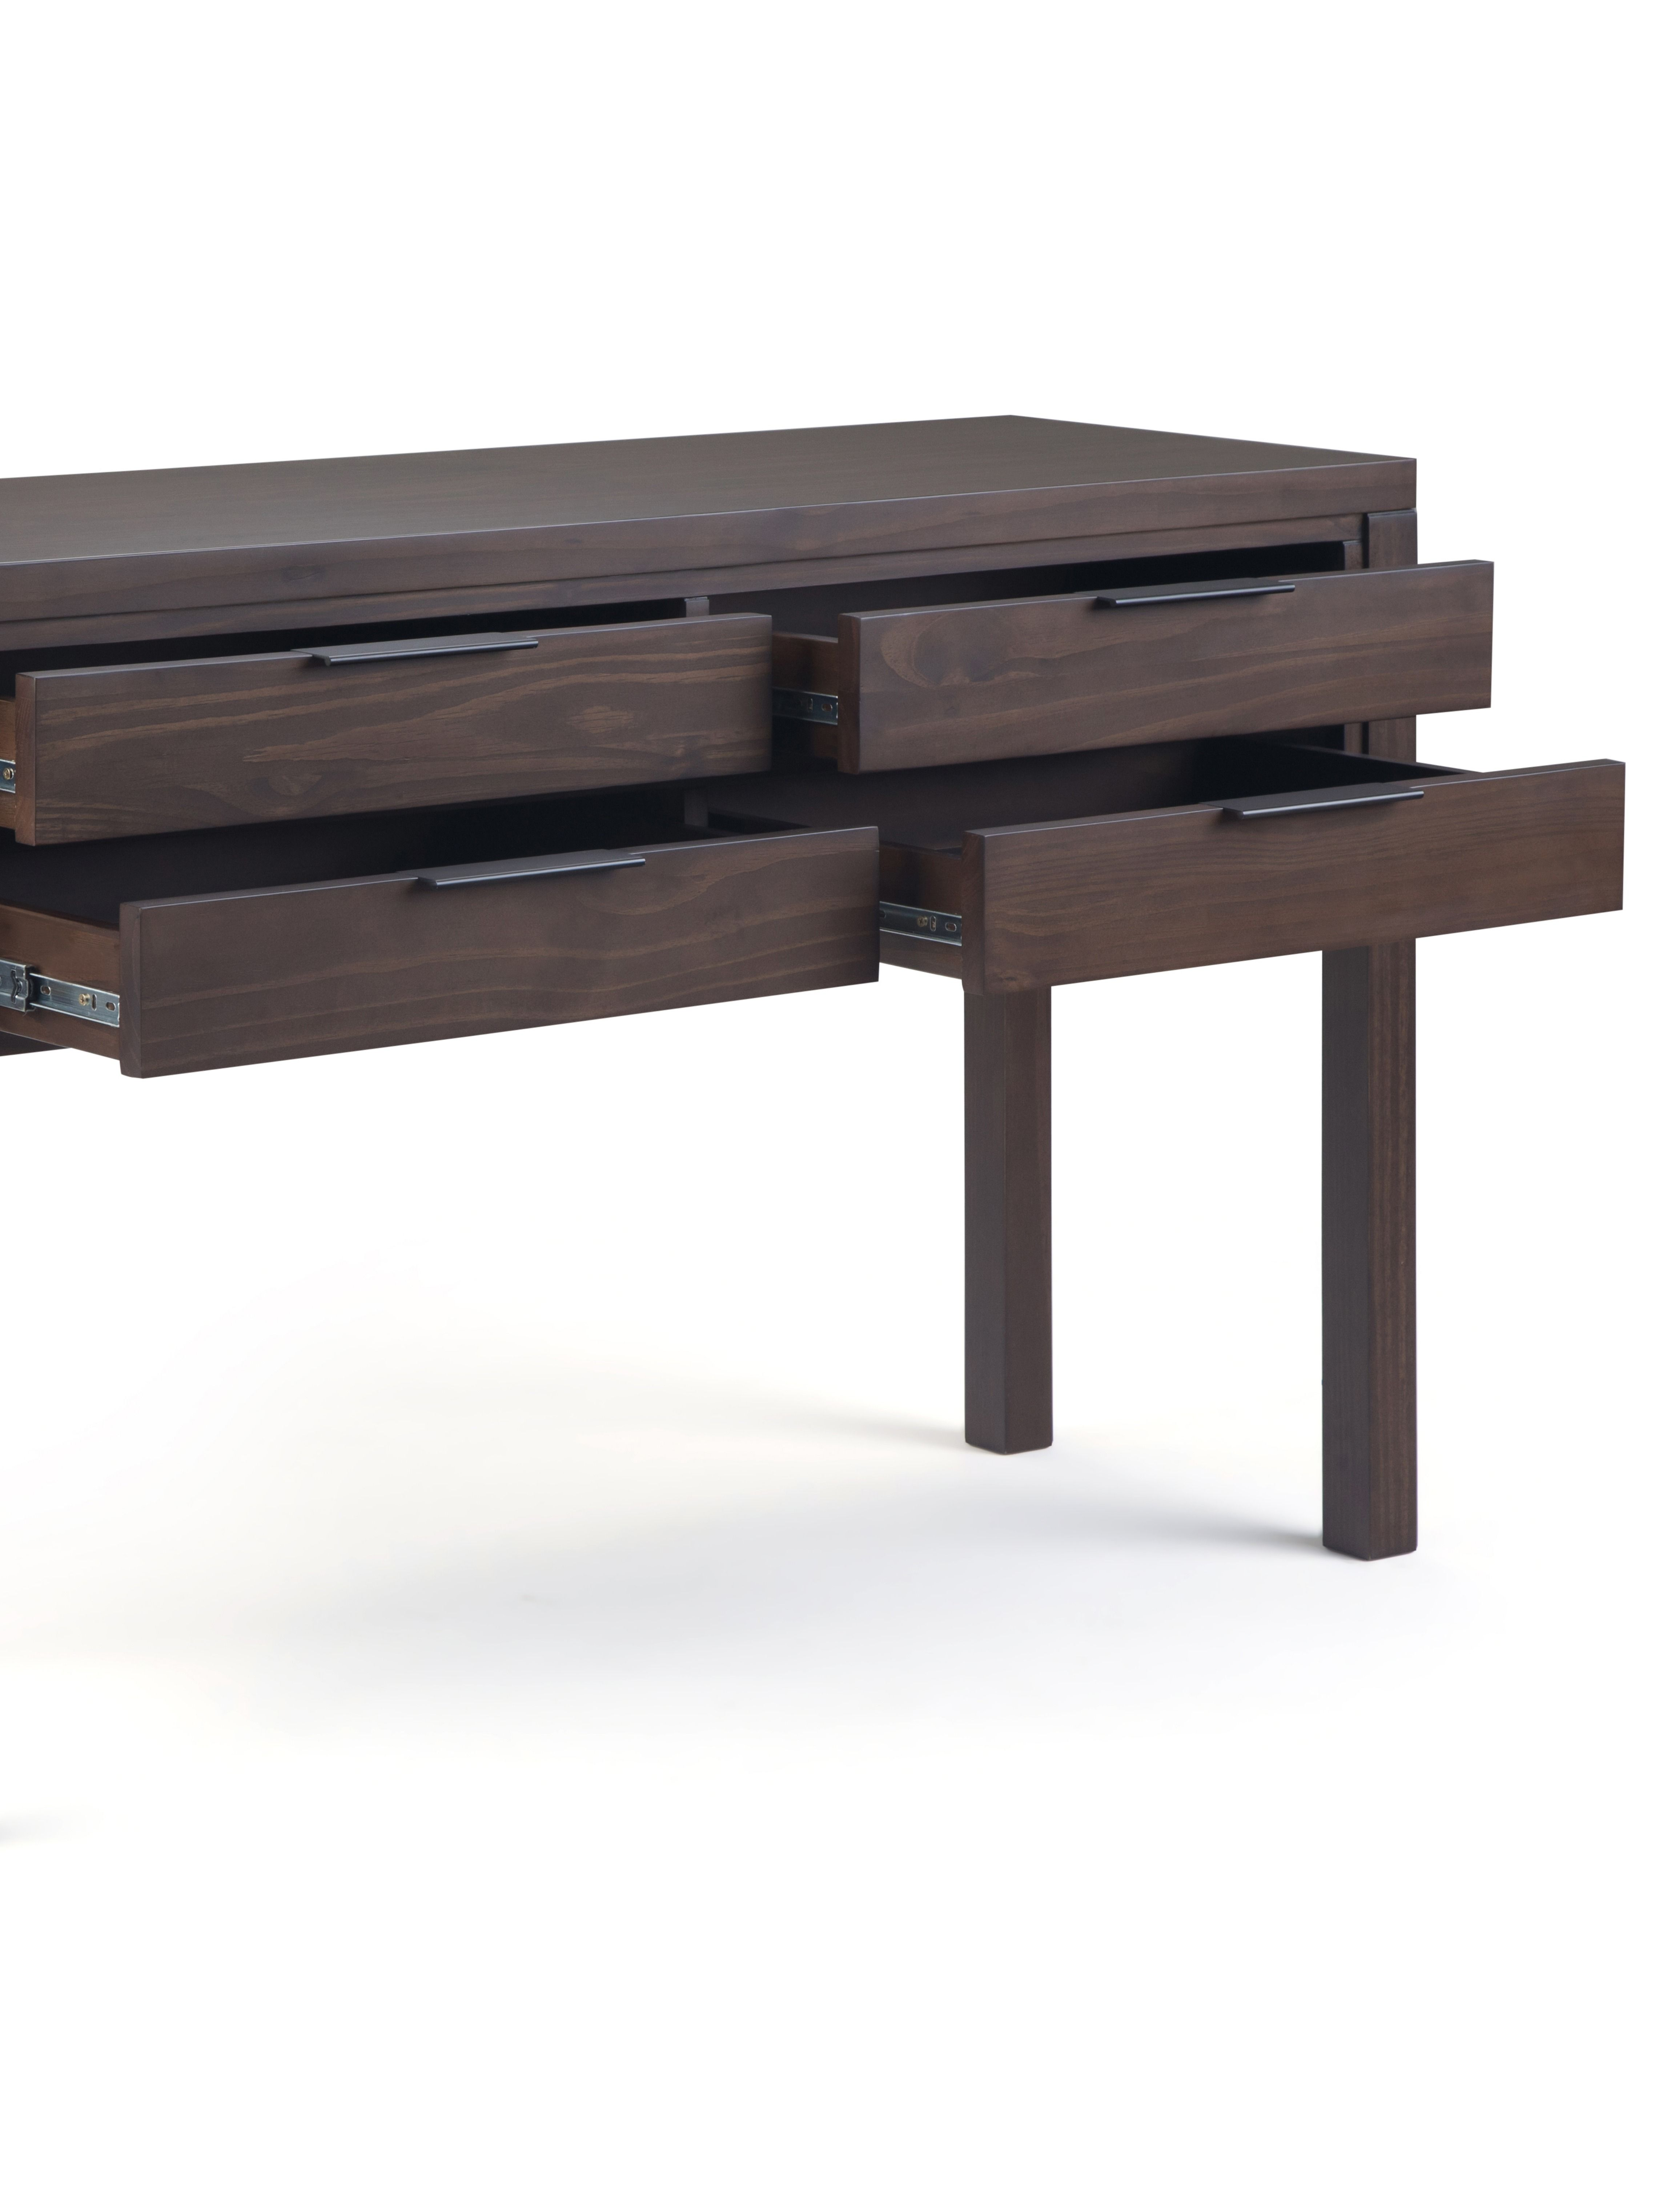 new product 3c0a9 ca6e5 The Hollander Entryway Console Table measures 16' d x 48' w ...